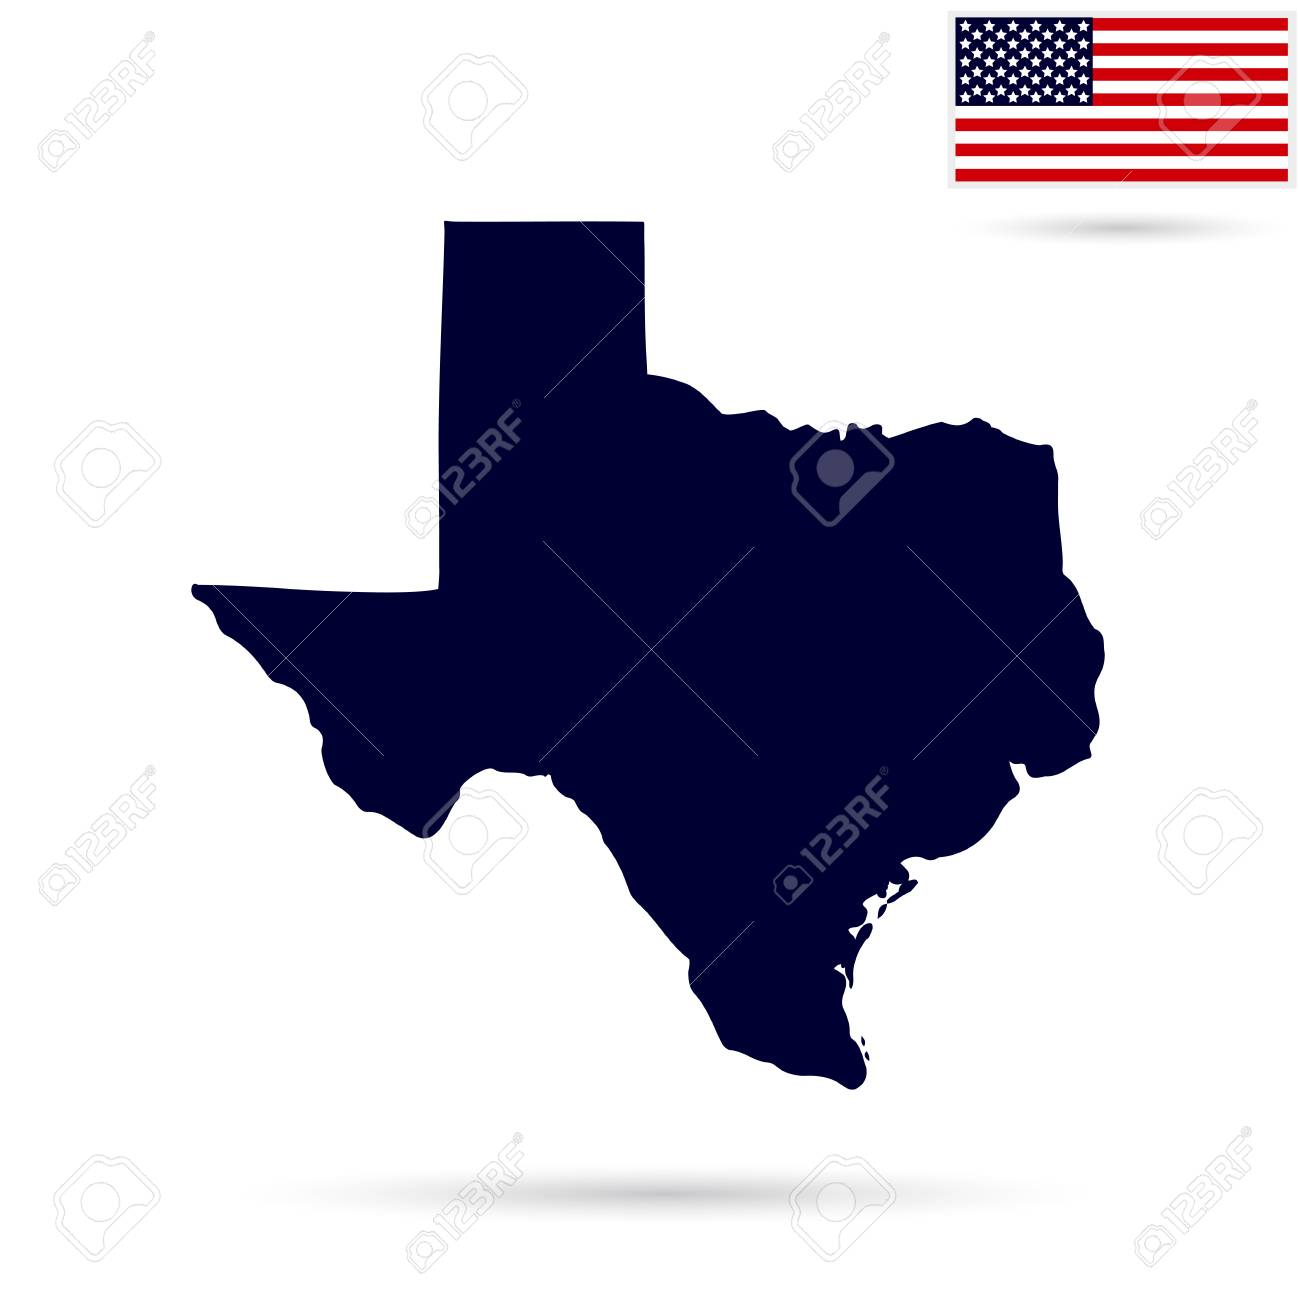 Map Of The Us State Of Texas On A White Backdrop With American - Texas-on-the-us-map